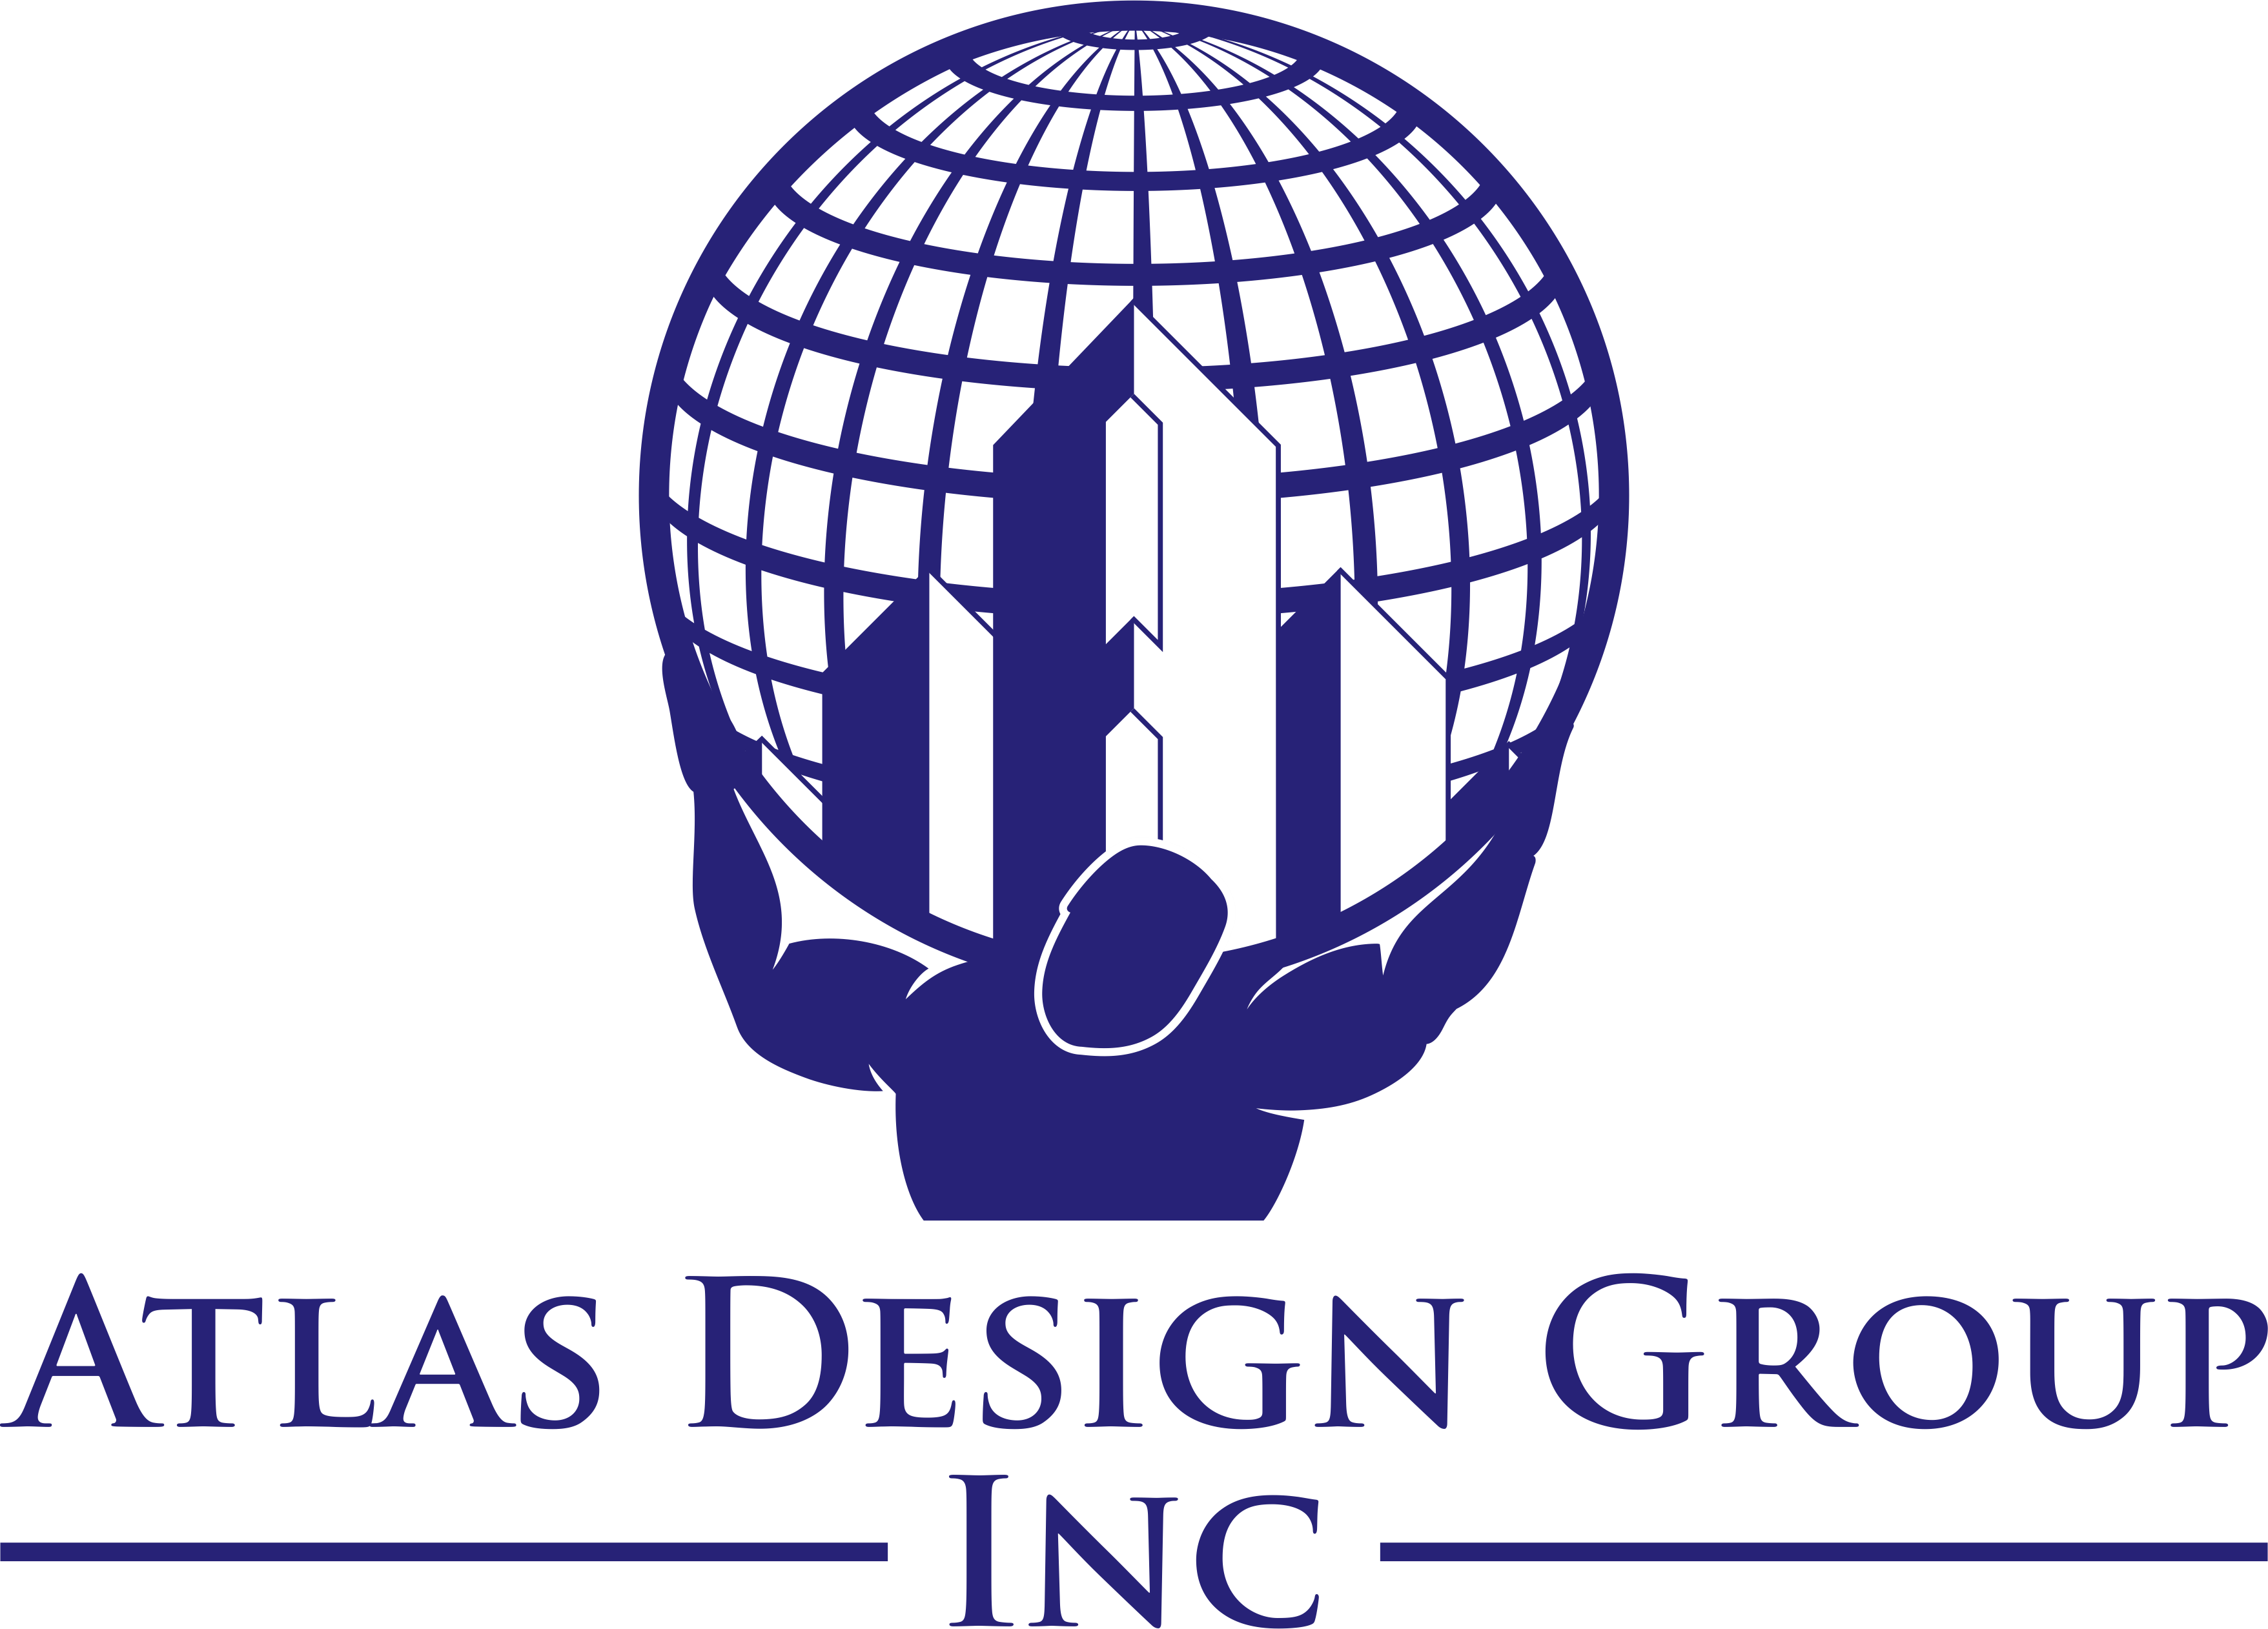 Atlas Design Group, Inc.